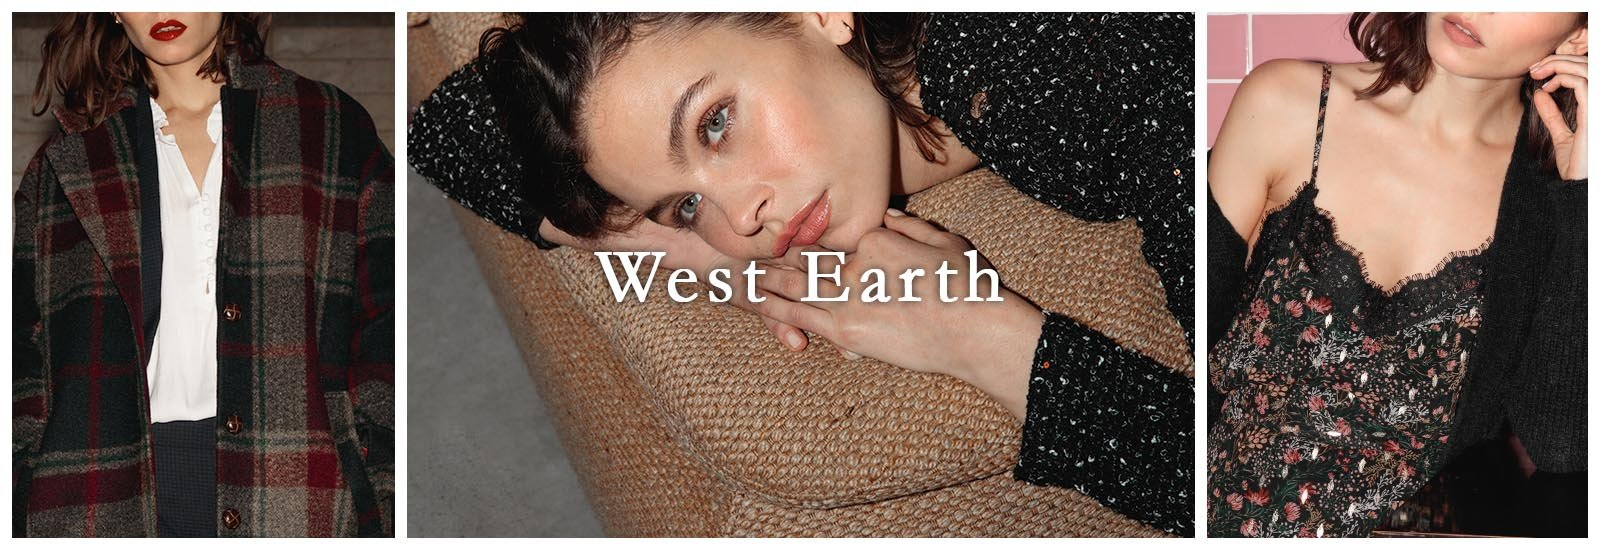 West Earth